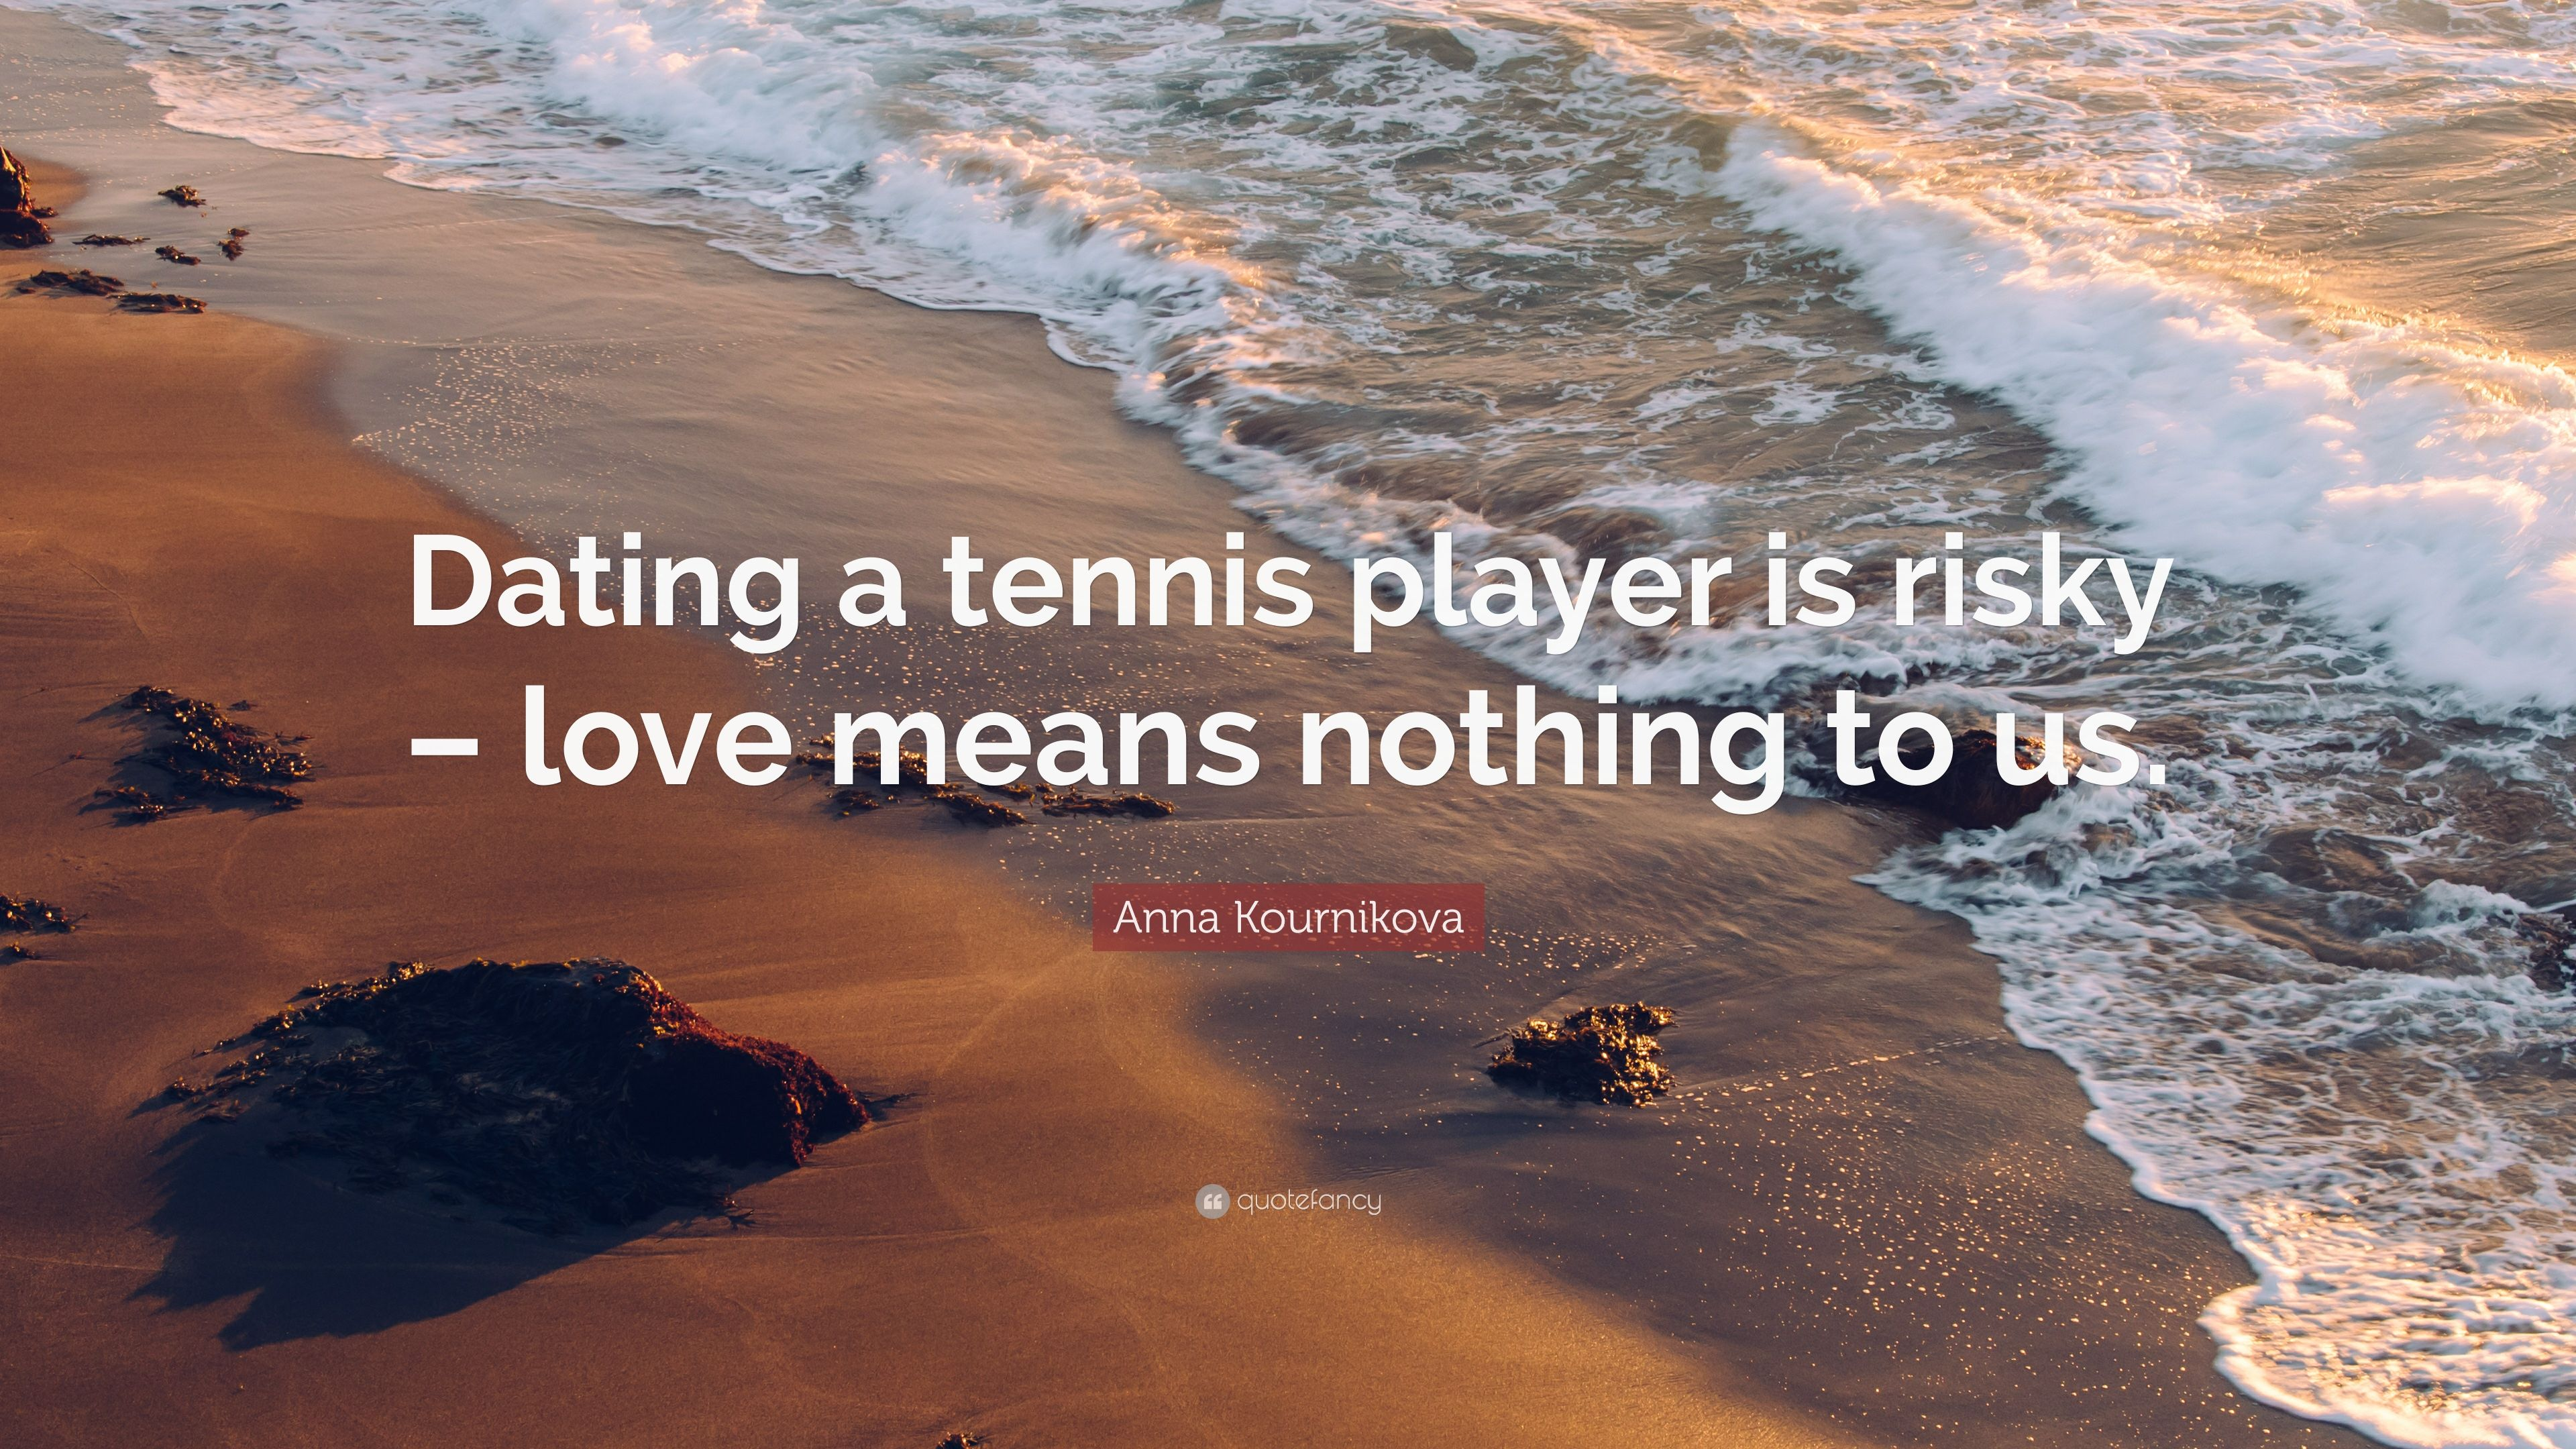 dating tennis players